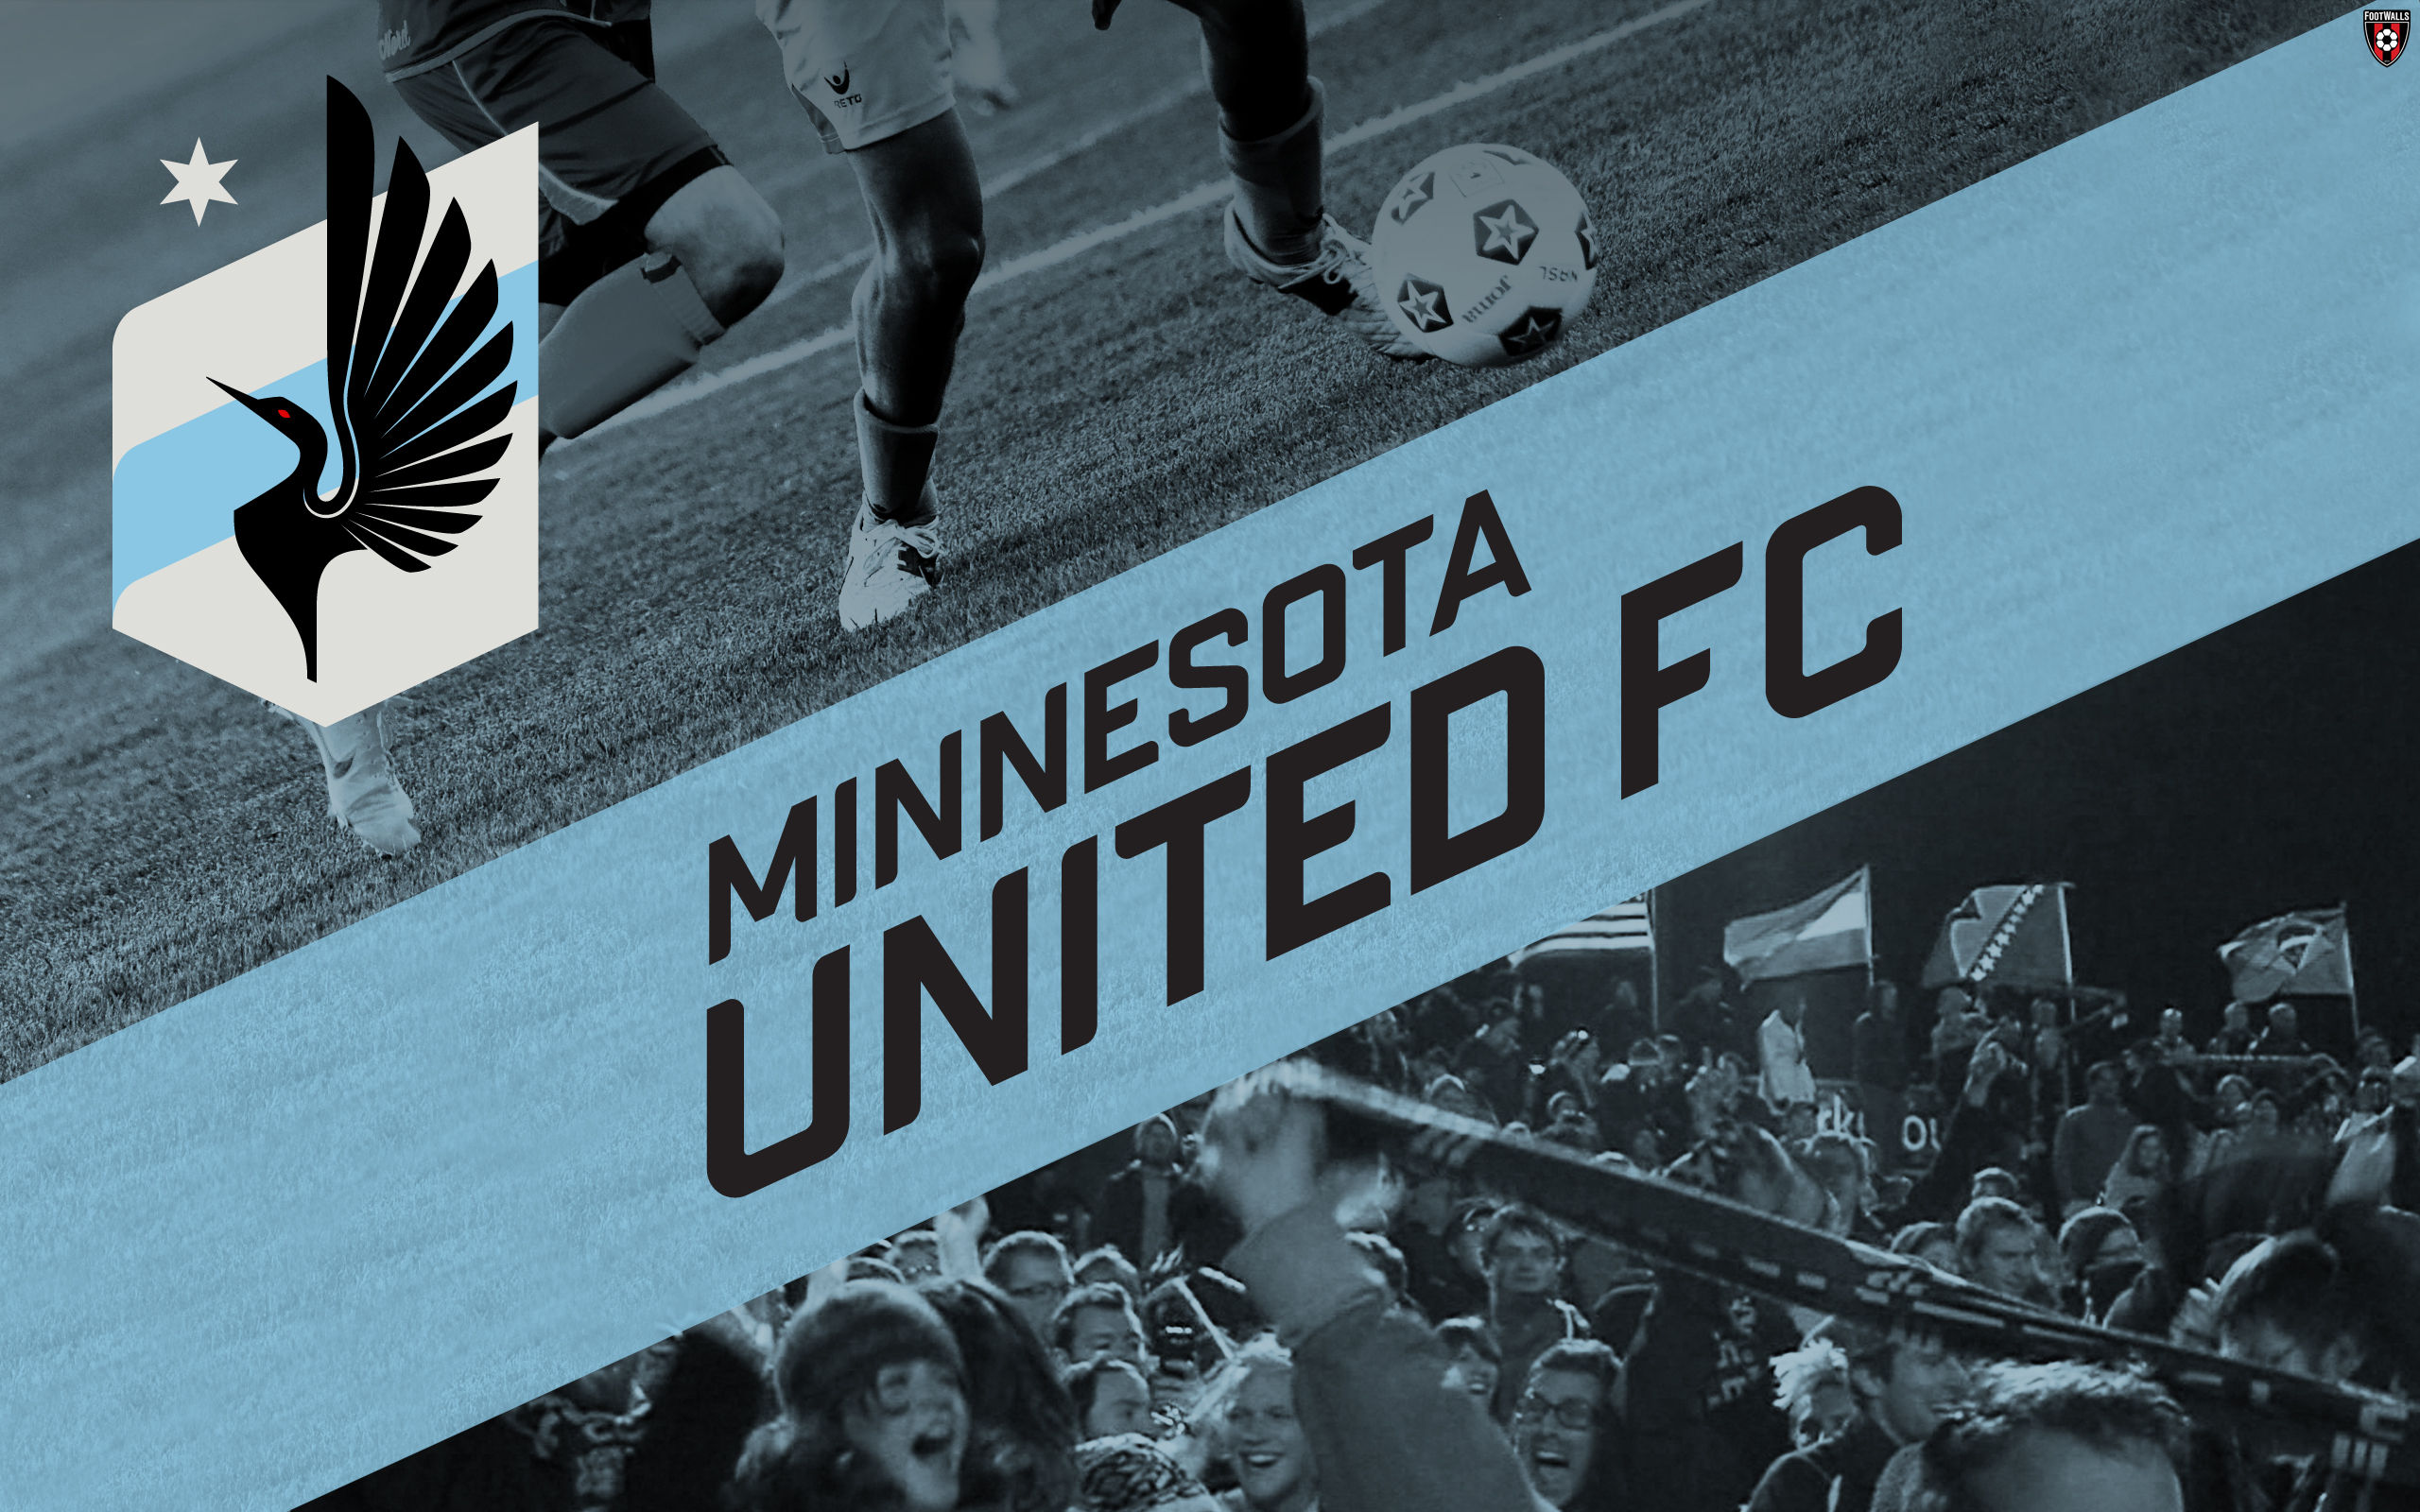 Minnesota United Wallpaper 4   Football Wallpapers 2560x1600